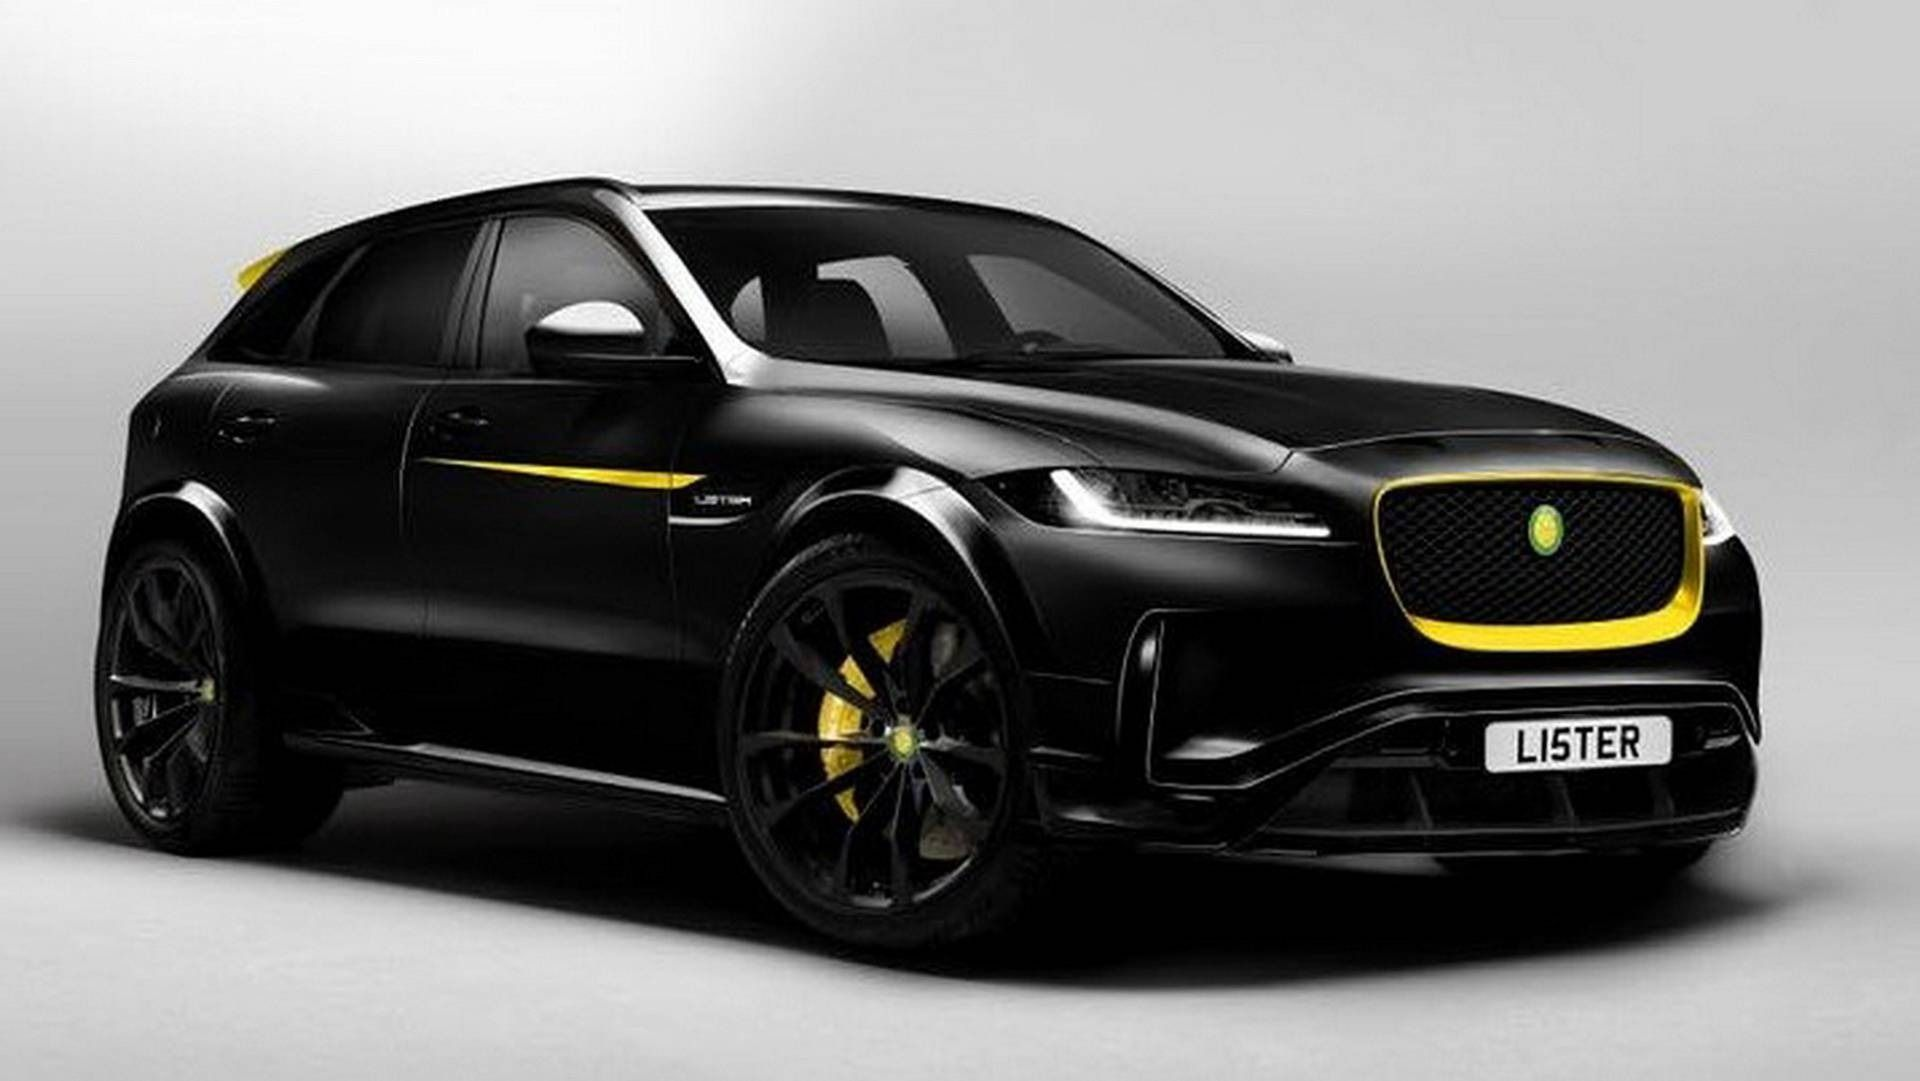 Lister Lfp Previews Their Fastest Suv In The World With 670 Hp 500 Kw Suv Jaguar Car Jaguar